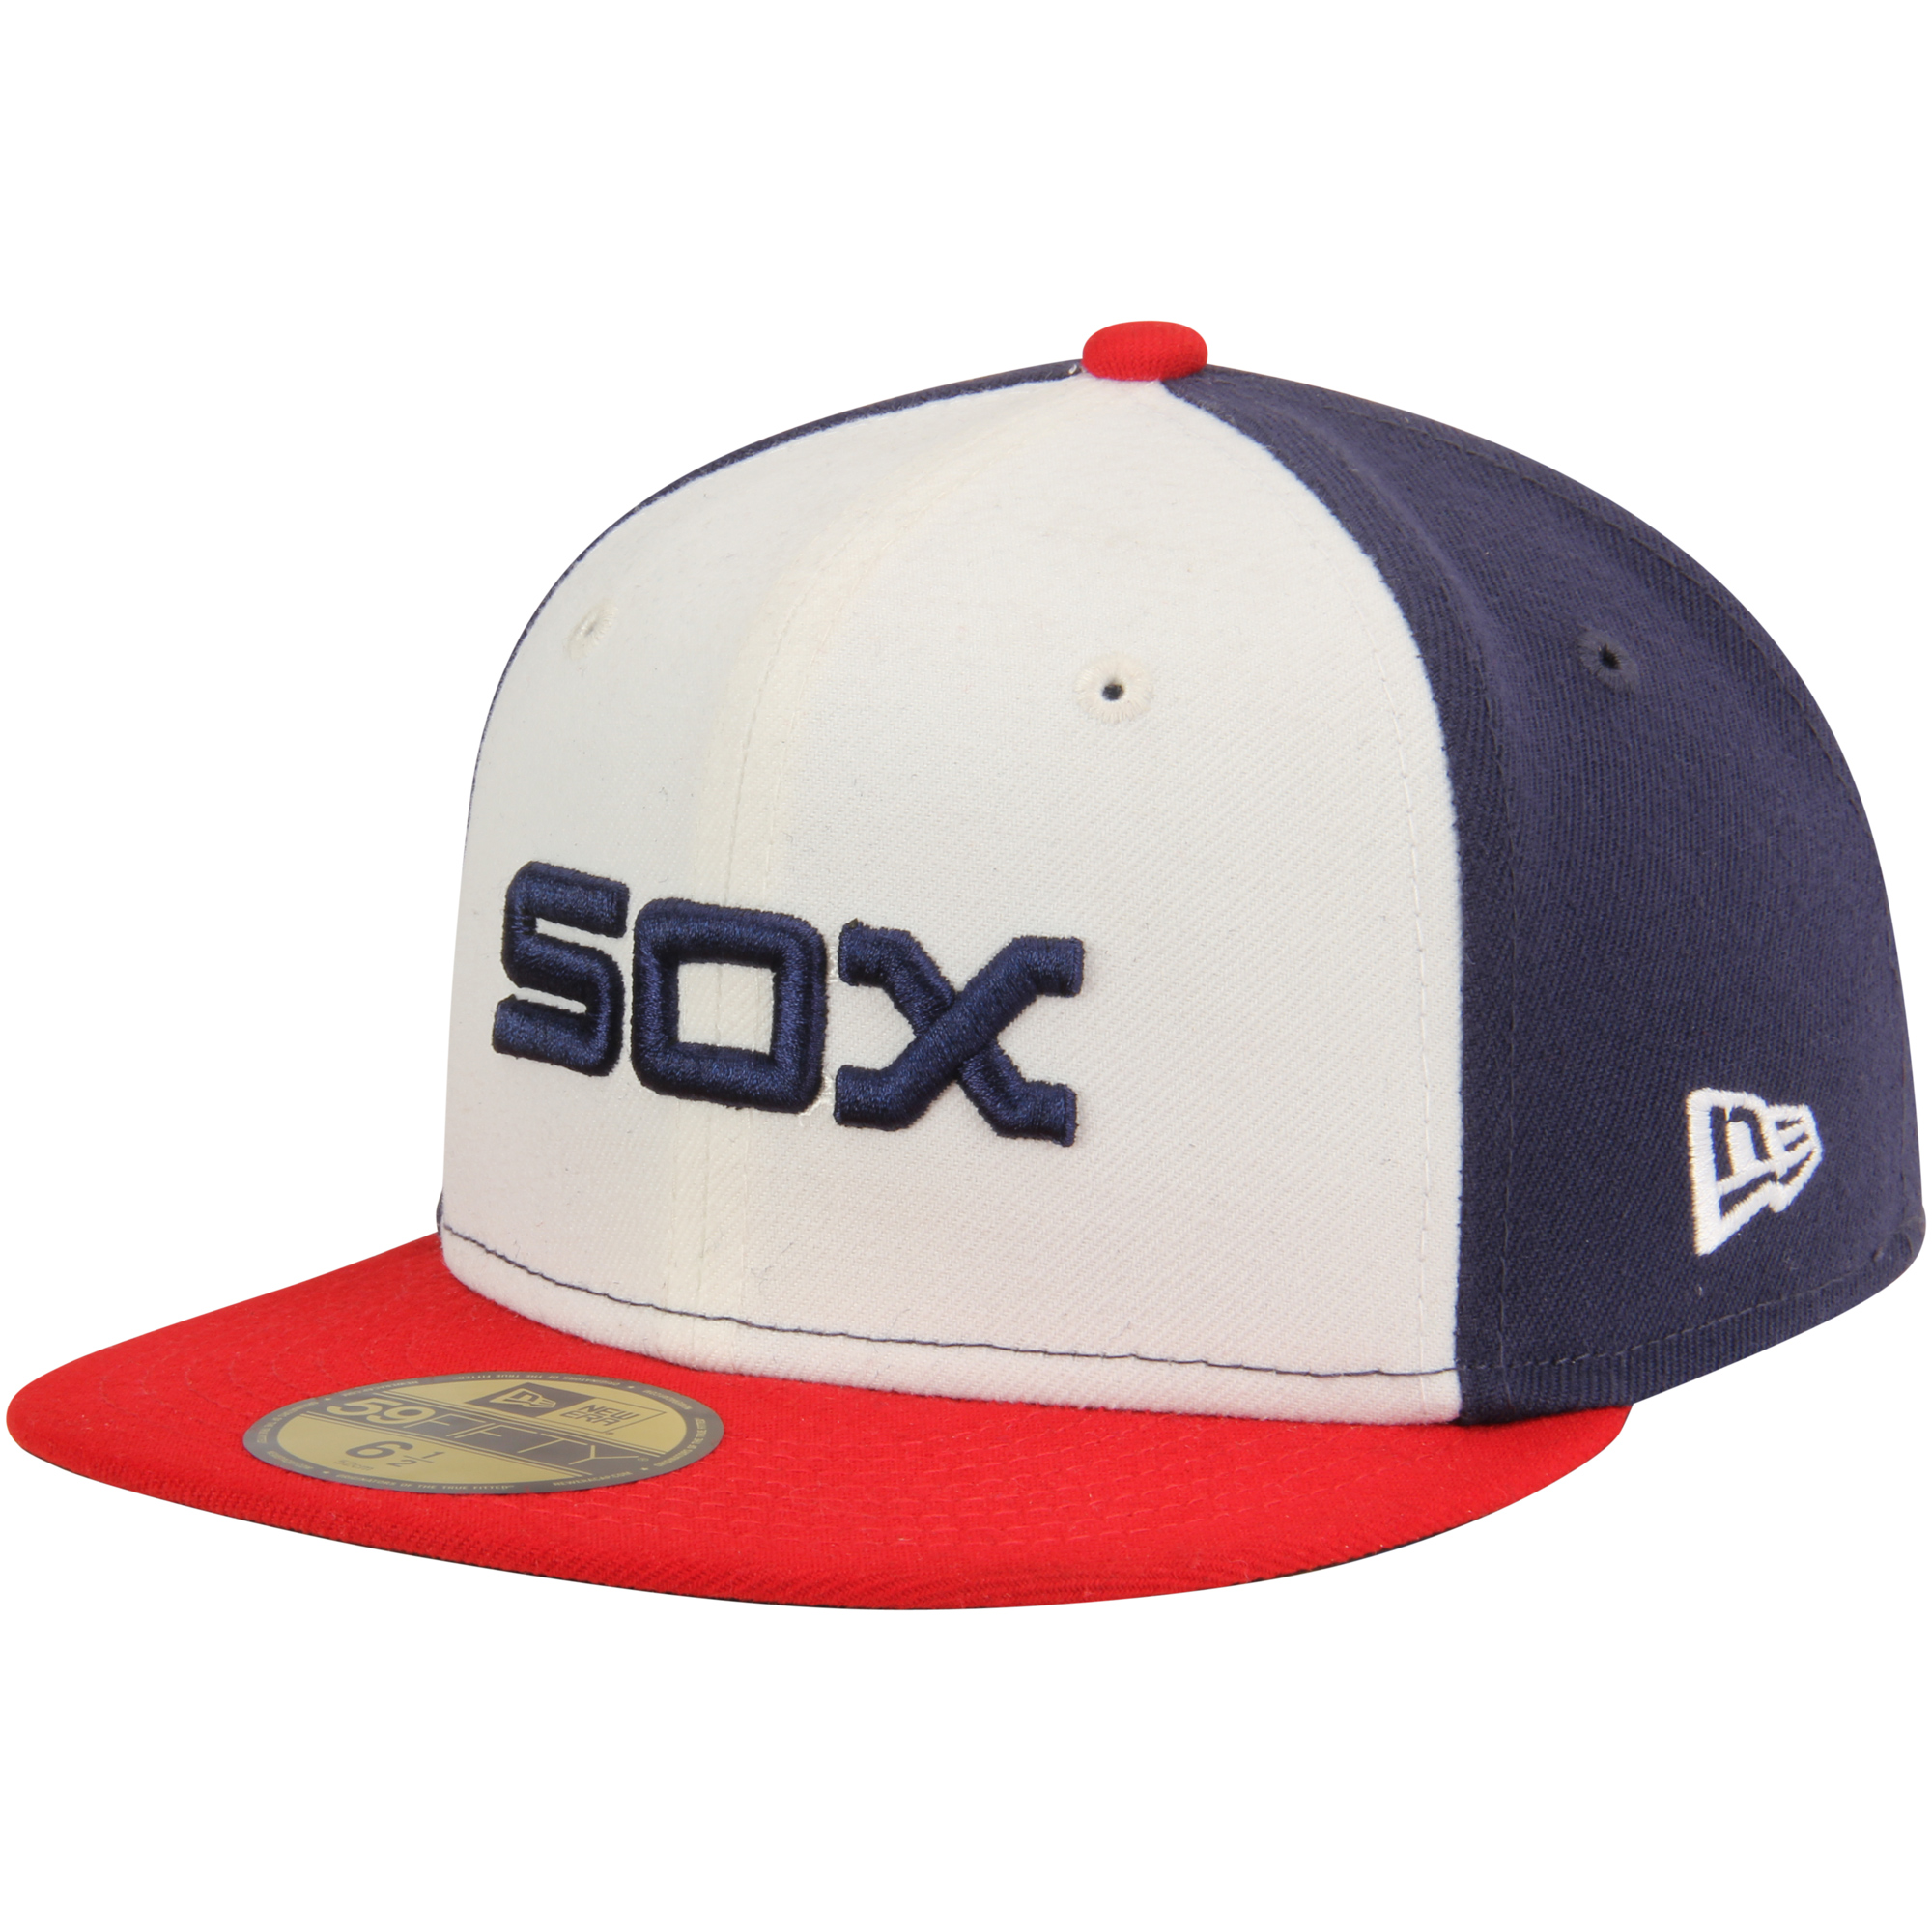 Chicago White Sox New Era Youth Authentic Collection On-Field Alternate 59FIFTY Fitted Hat - White/Navy